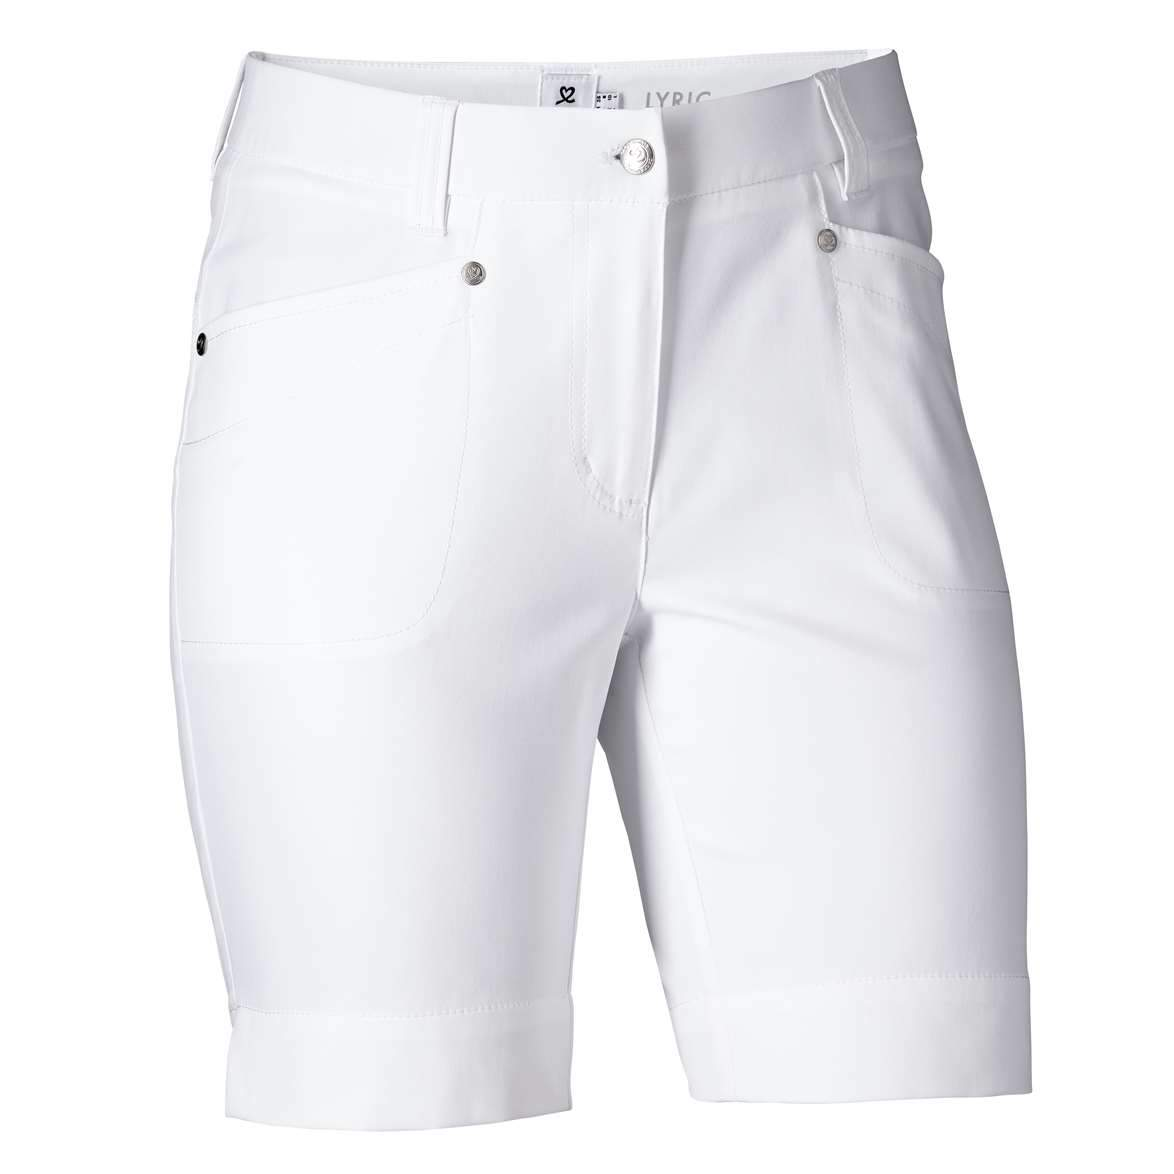 DAILY LYRIC GOLF SHORTS DAILY LADIES SHORTS DAILY